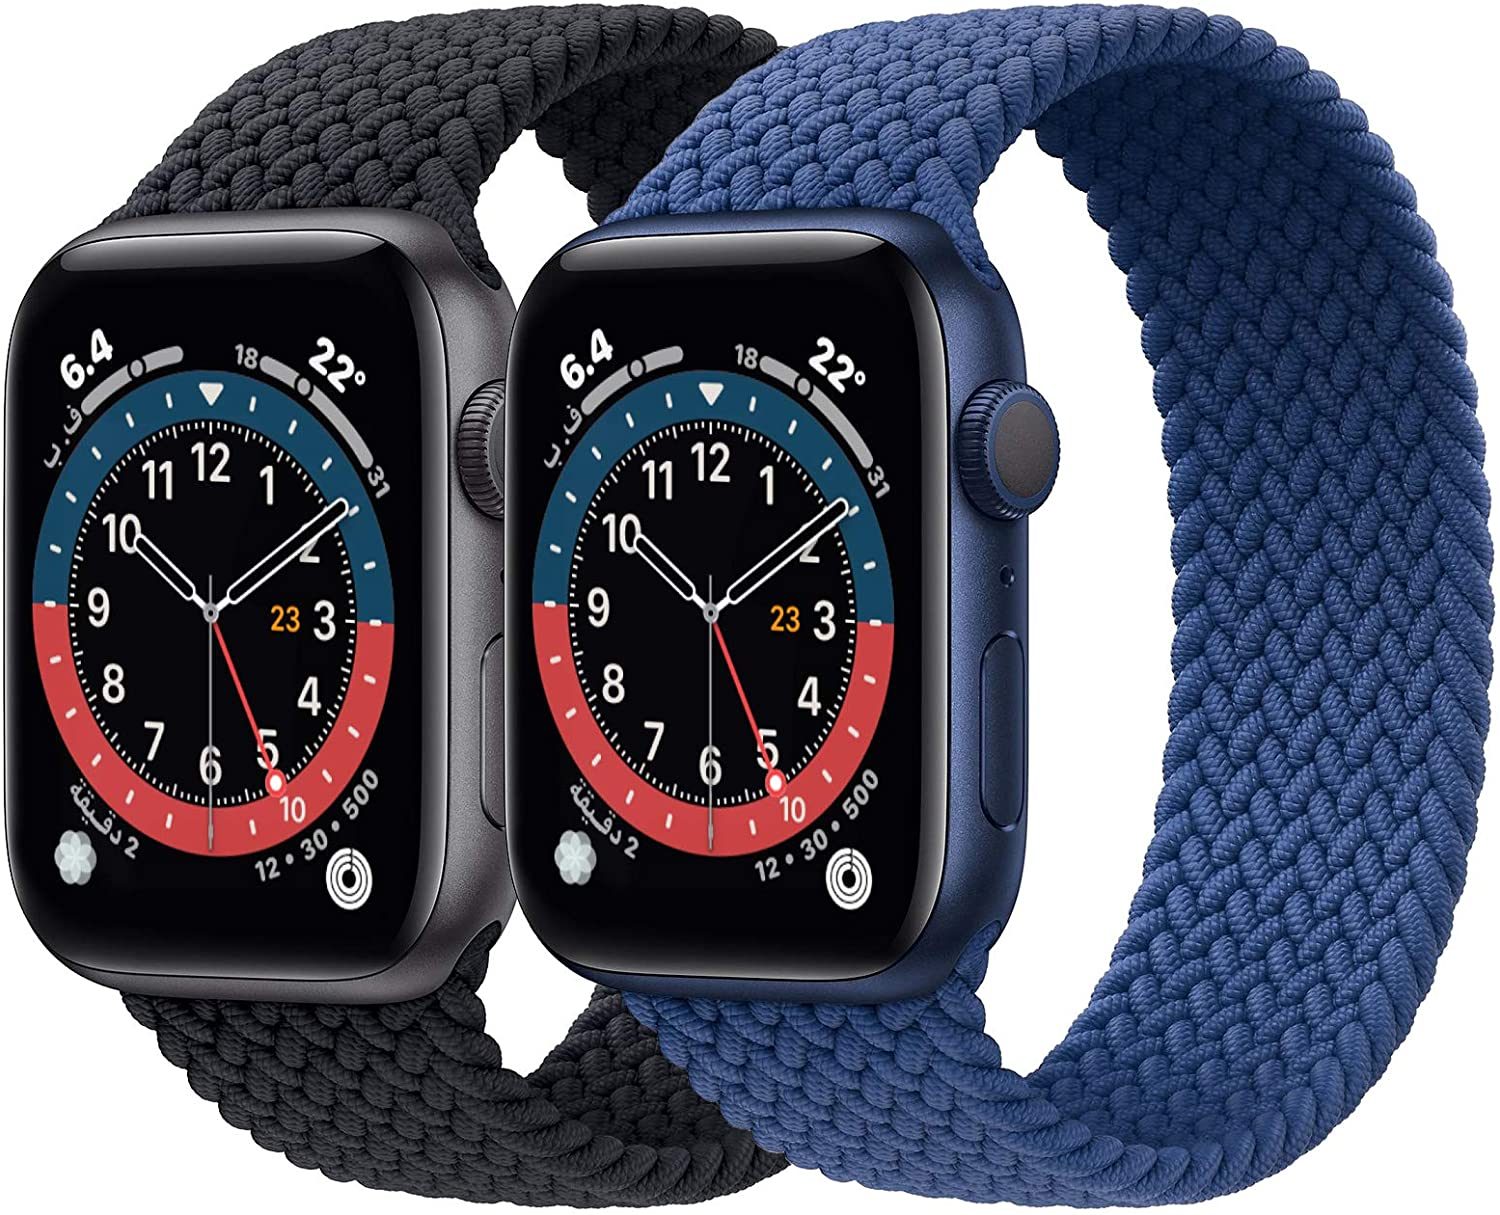 2 Pack Braided Solo Loop Sport Bands Compatible for Apple Watch Band 38mm 40mm 42mm 44mm soft Stretchy wristband Women Men Elastic strap Compatible for iWatch Series 6/SE/5/4/3/2/1, 38mm/40mm Large